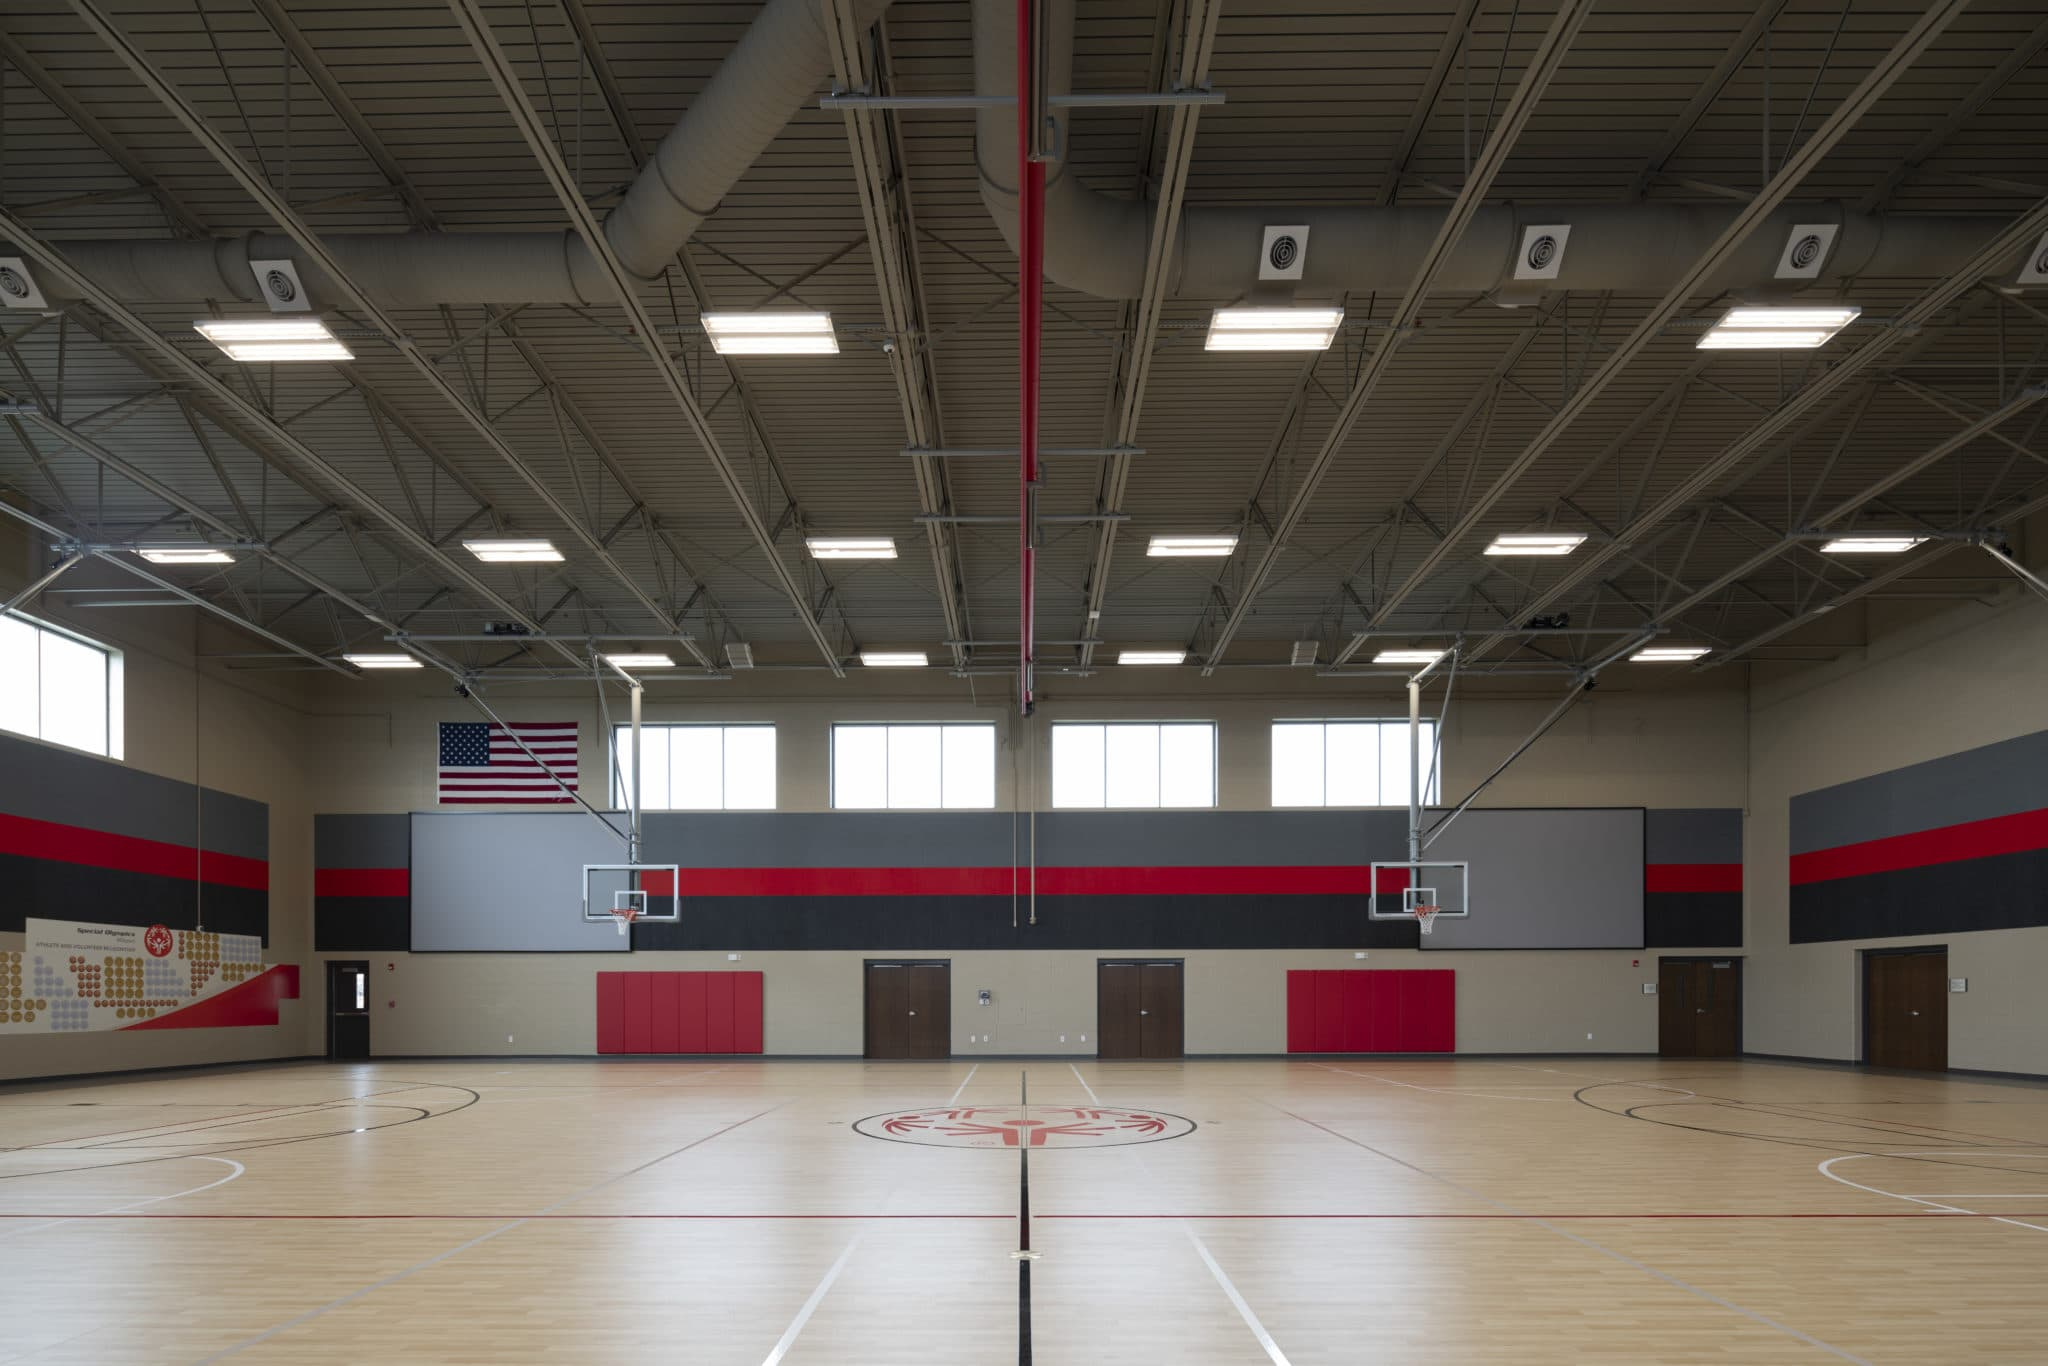 A gymnasium with two basketball hoops, two large screens, and a SOMO logo at center court